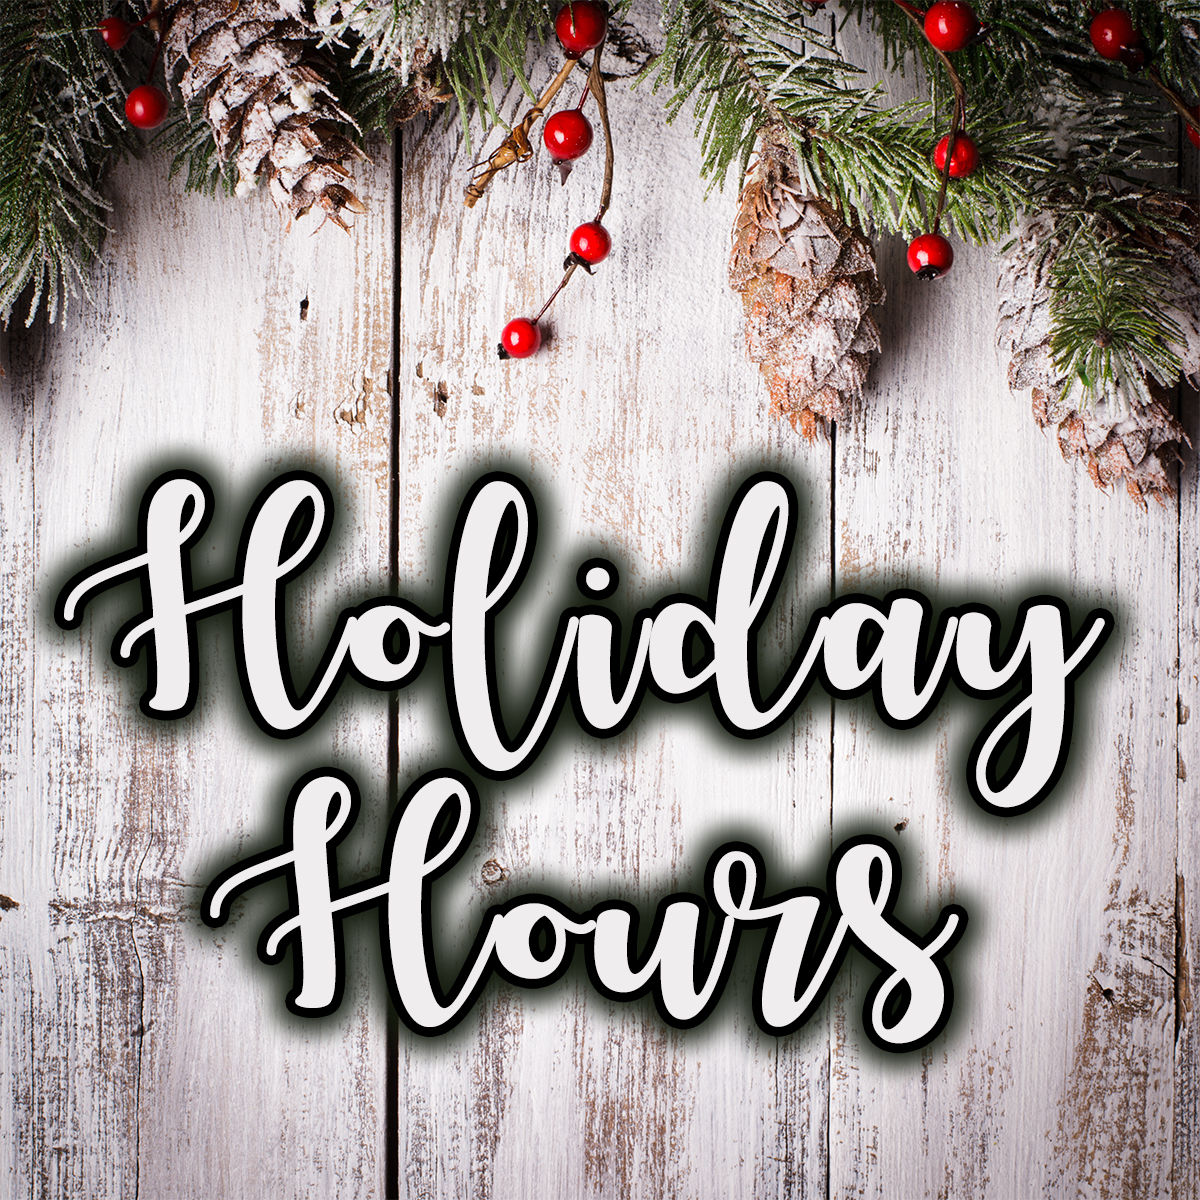 Christmas Hours.Holiday Hours Christmas Bella Vista Property Owners